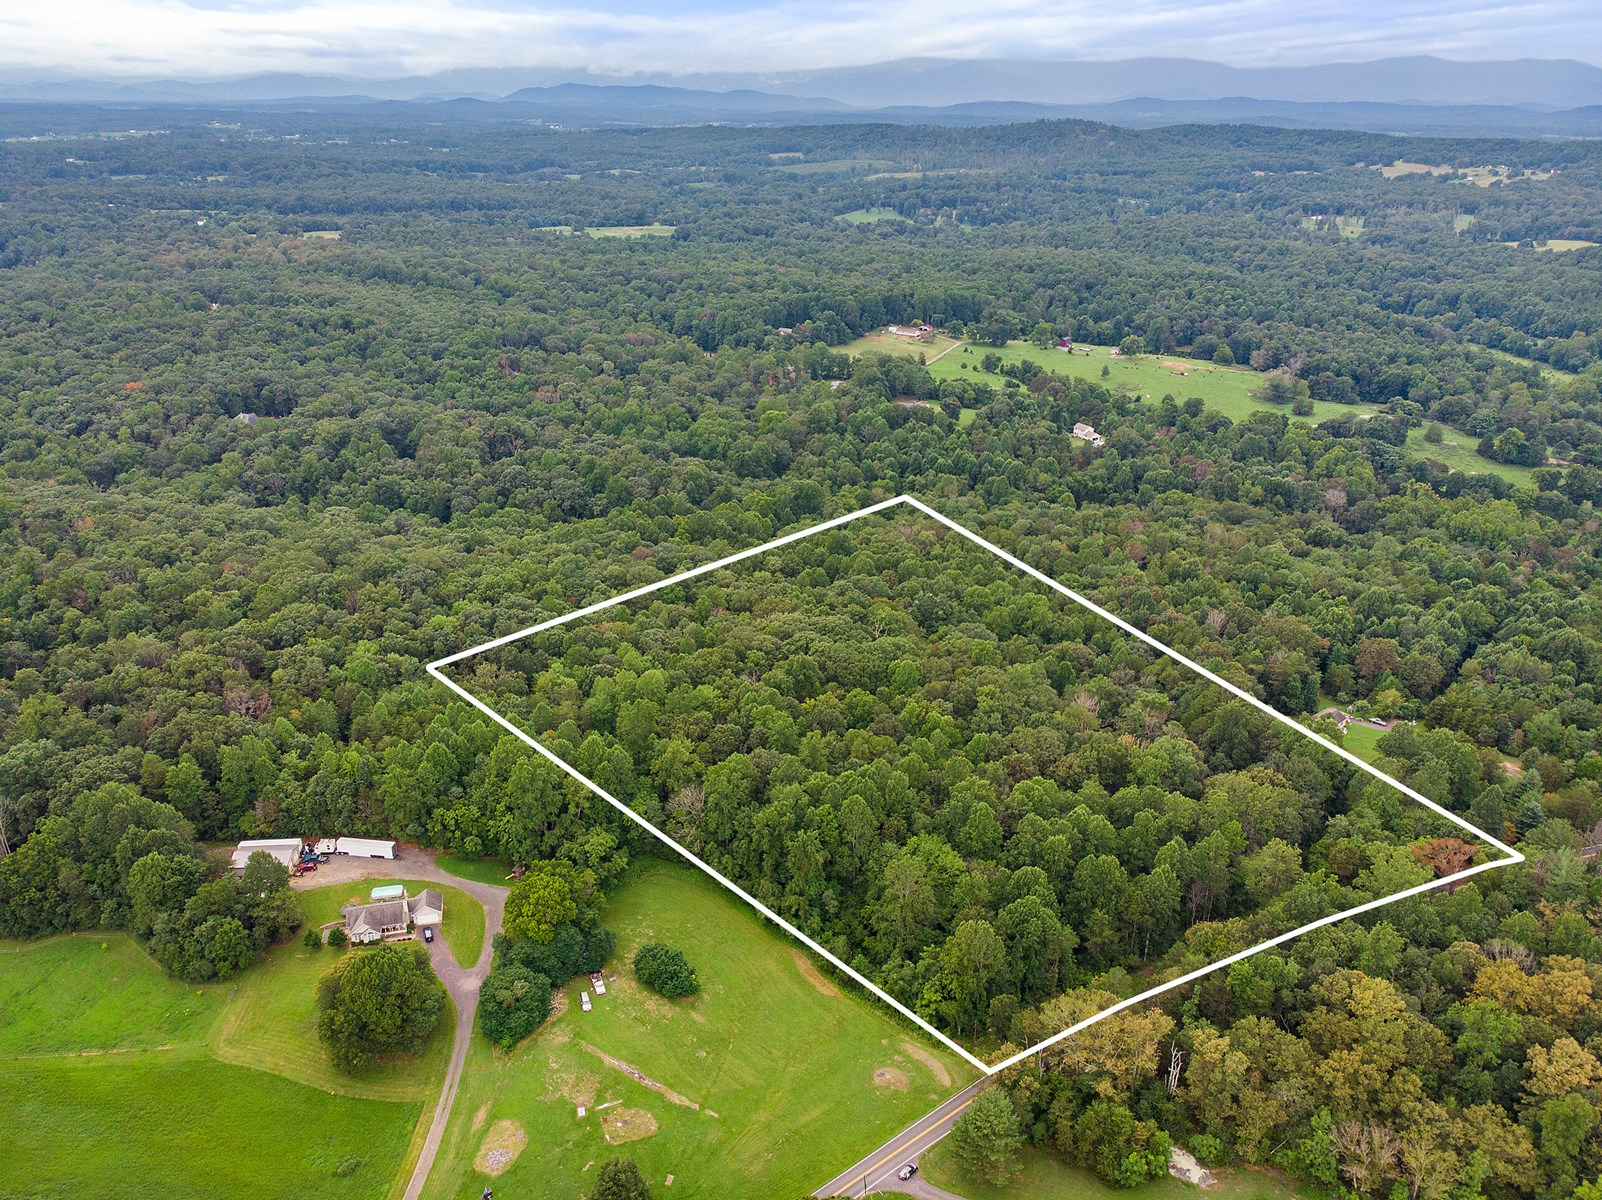 Land for Country Home for Sale in Culpeper  Co VA